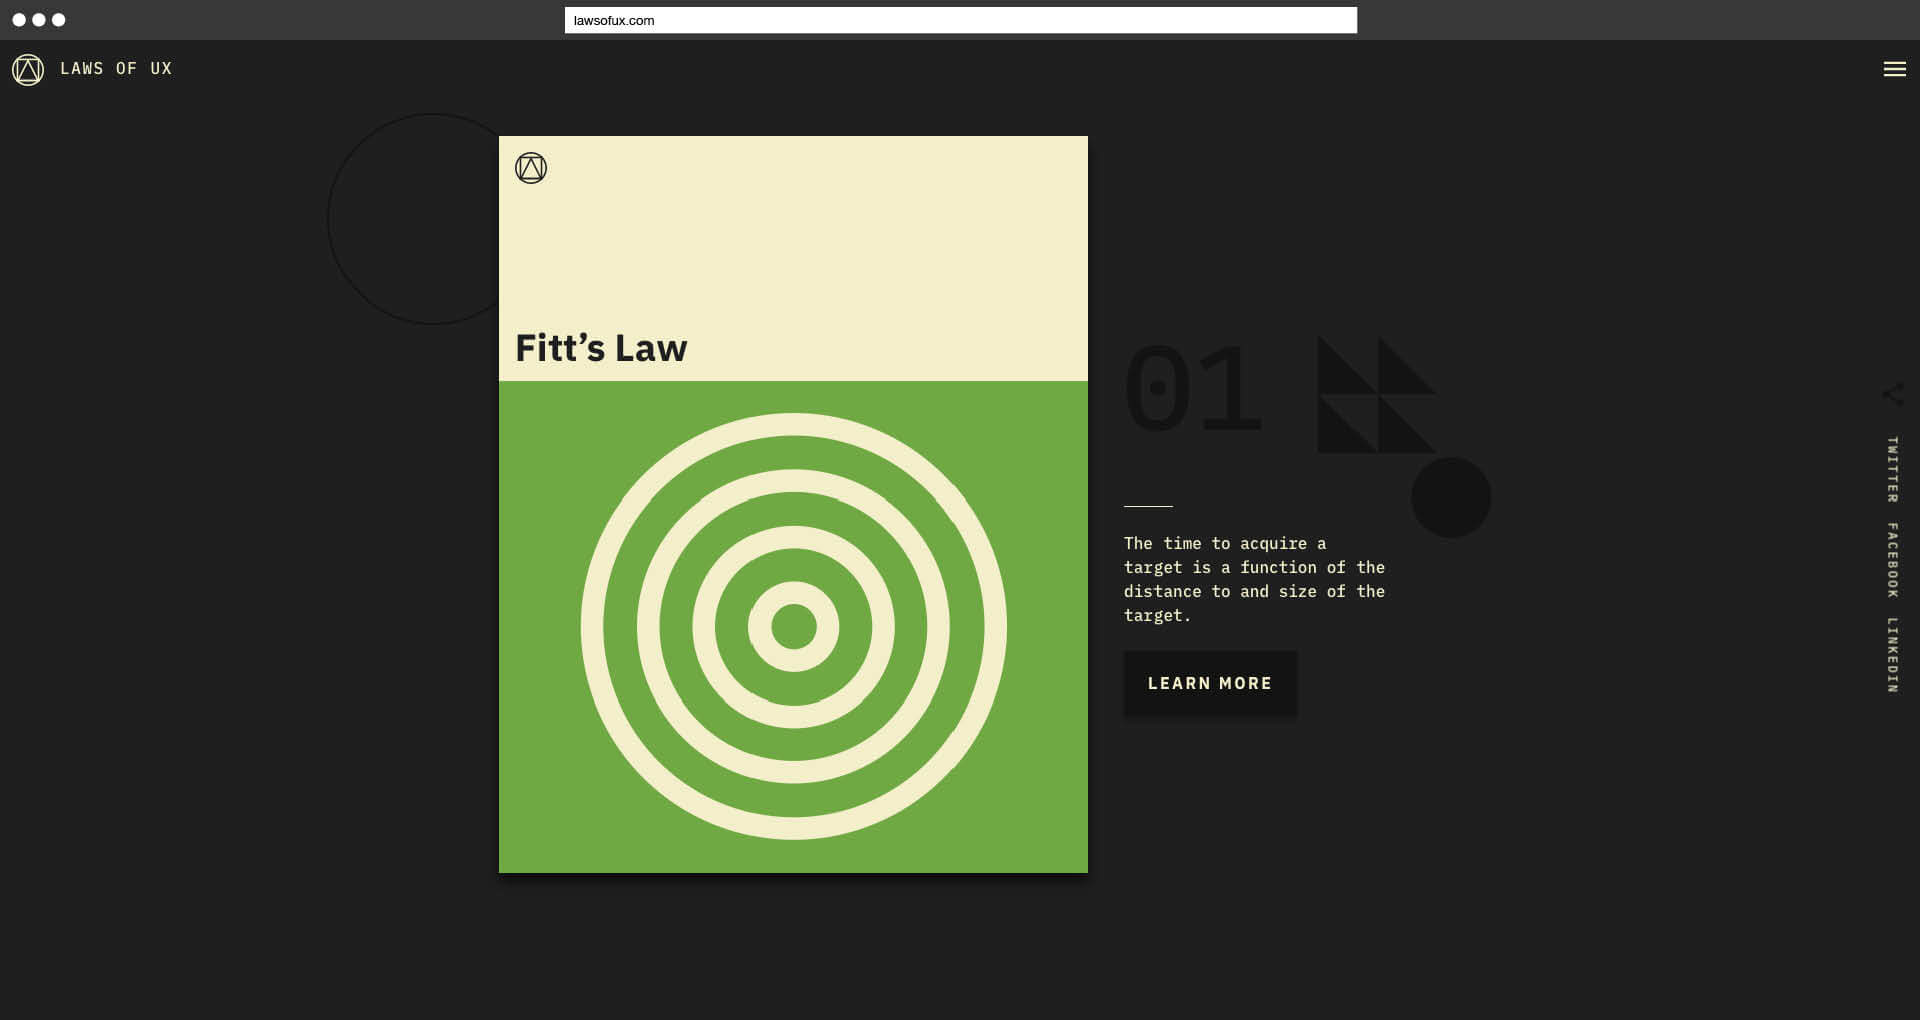 Laws of UX Jon Yablonski Fitt's Law